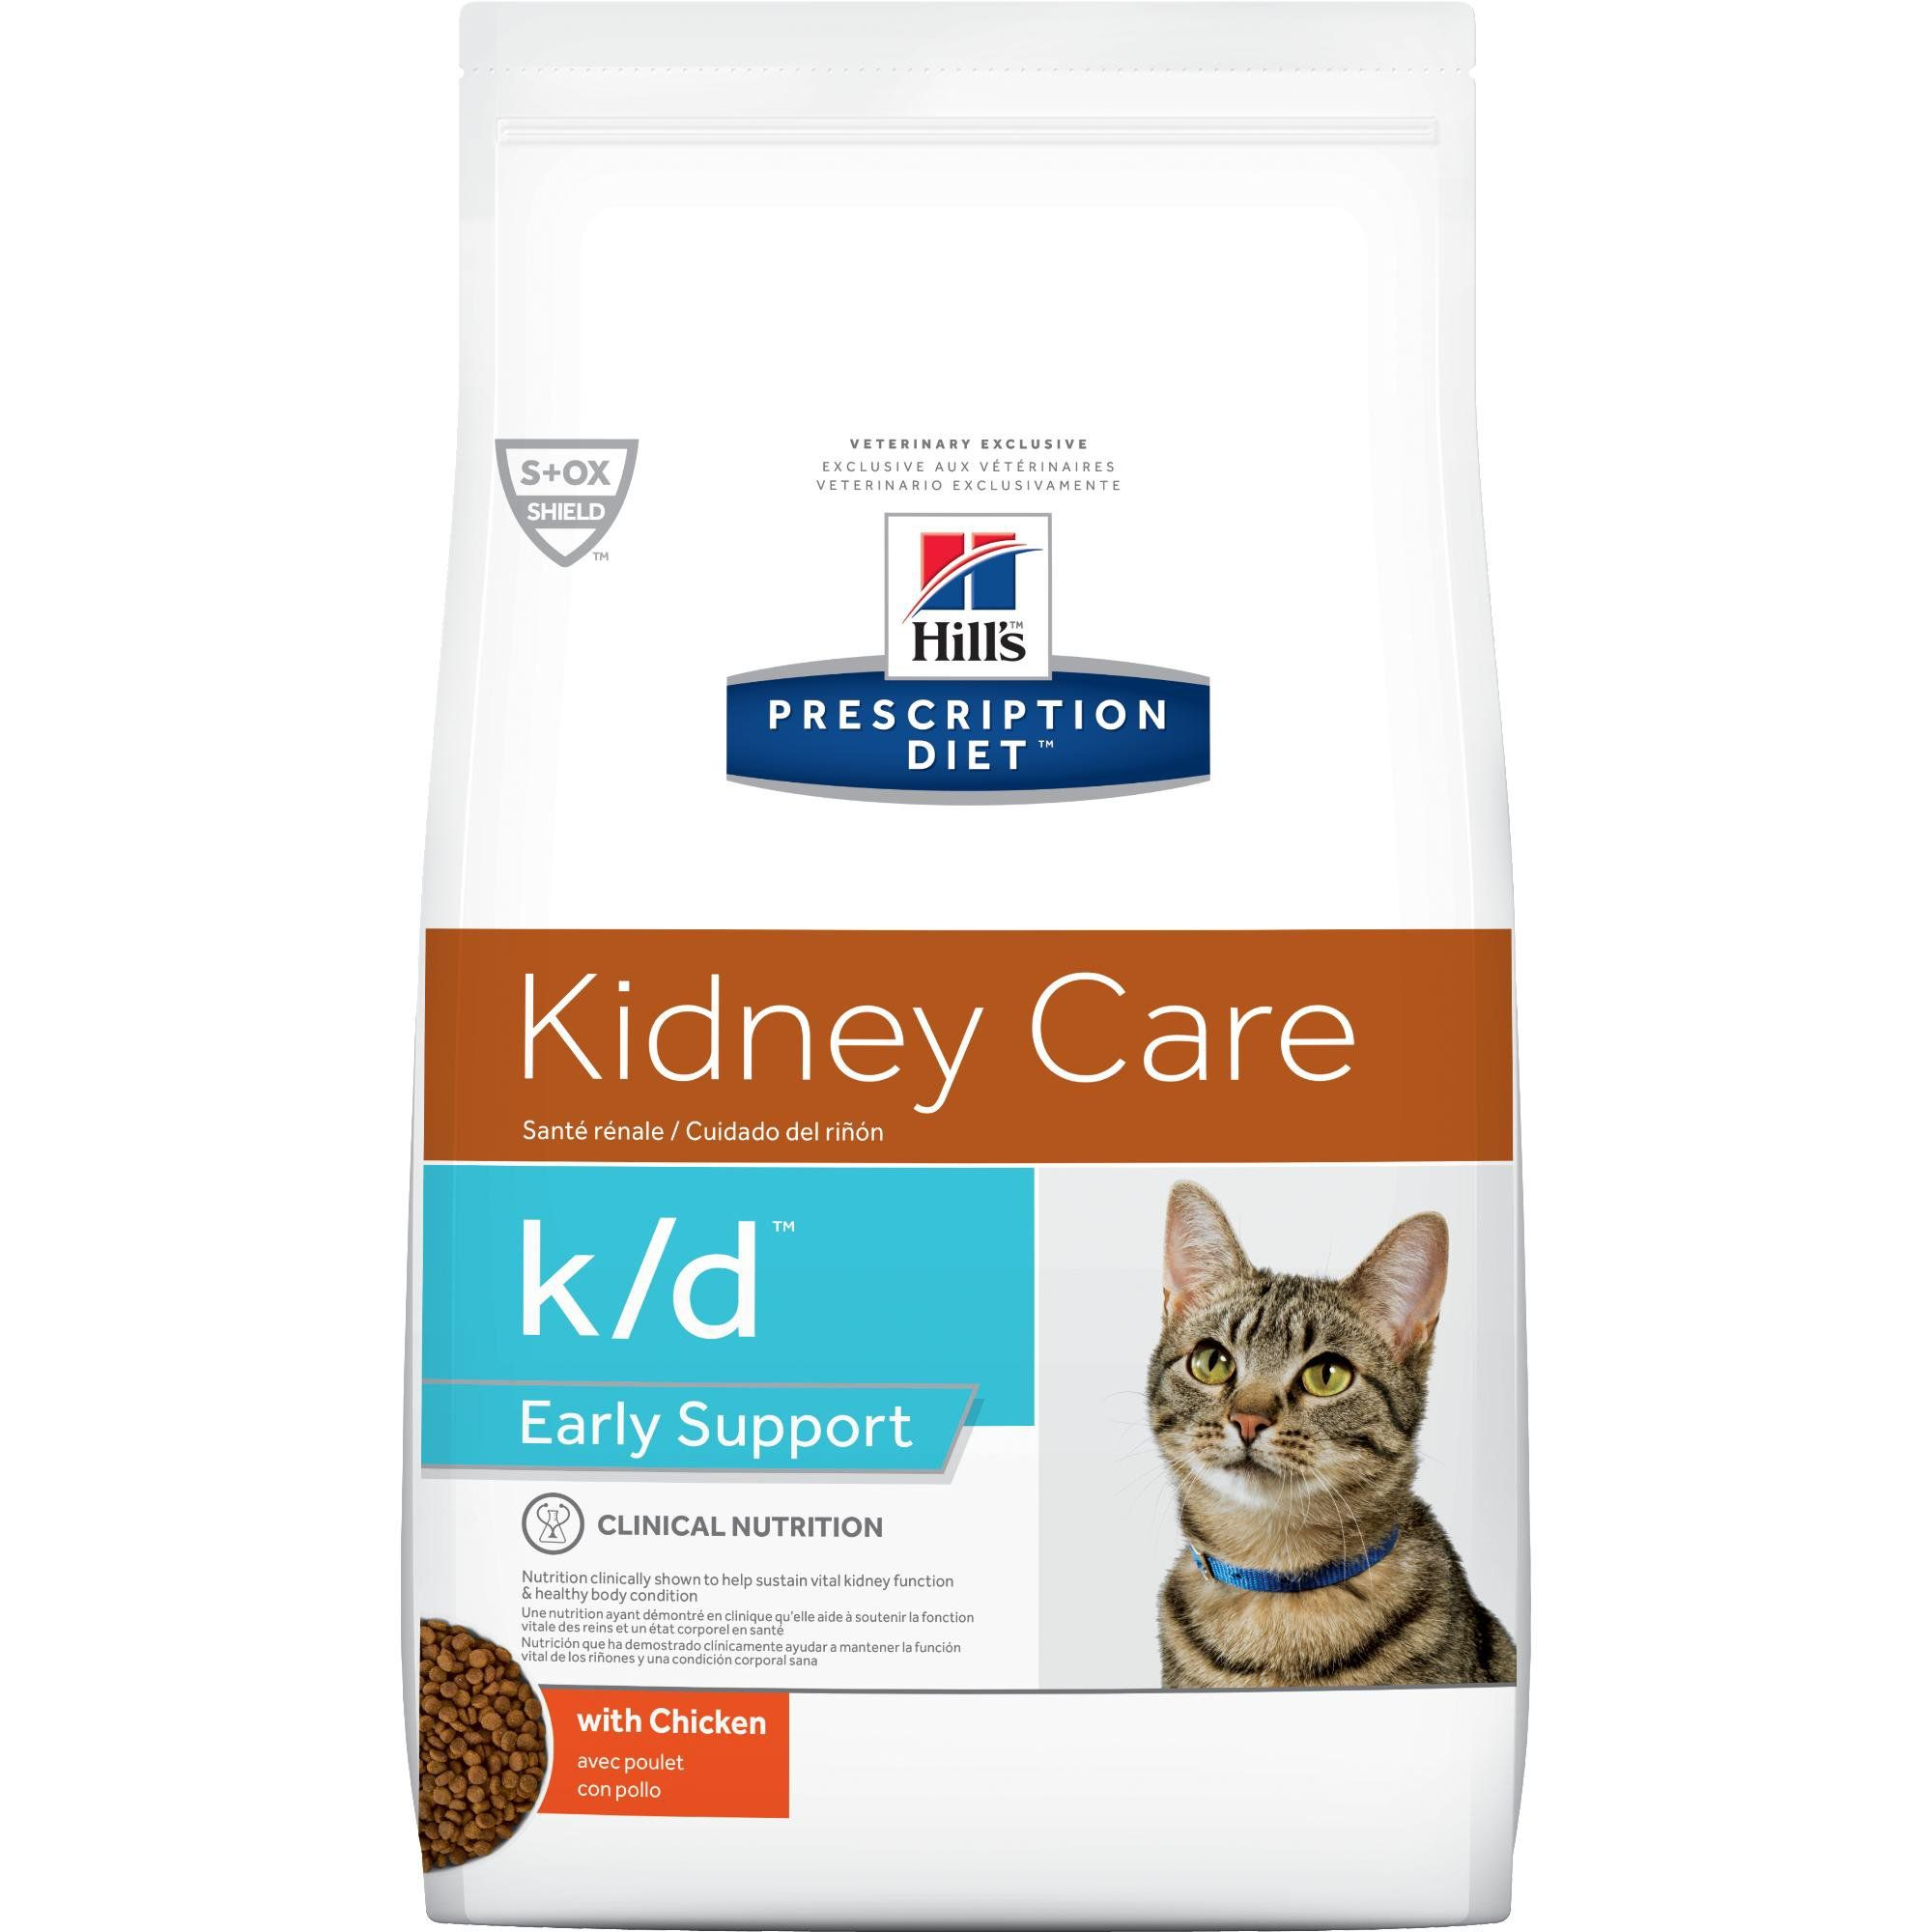 Hill's Prescription Diet k/d Kidney Care Early Support